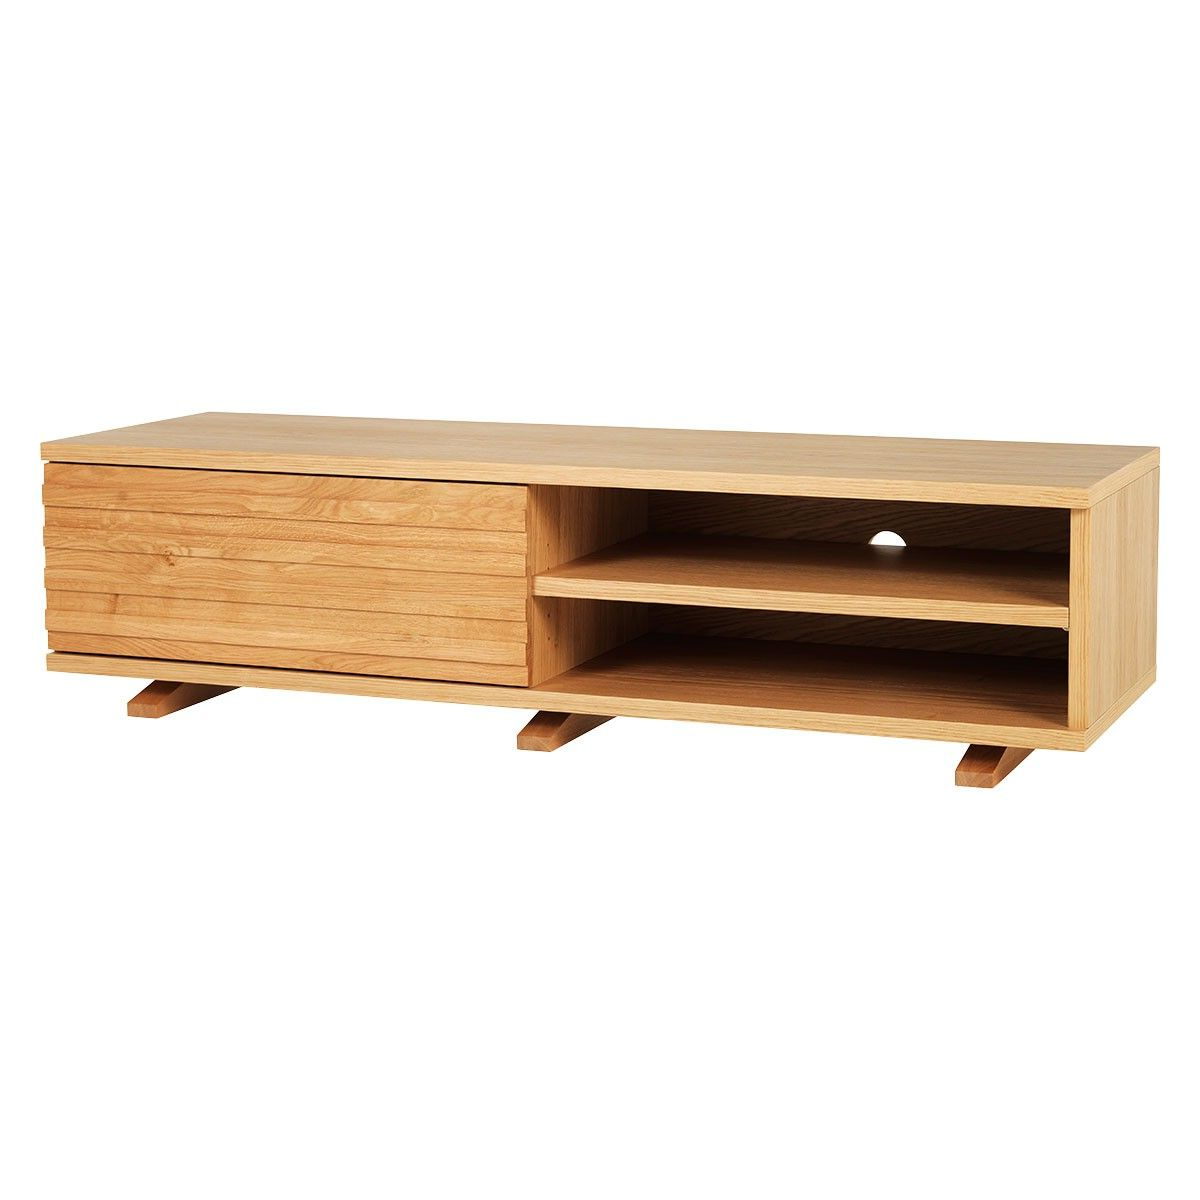 Enzo Oak Tv Stand With One Storage Drawer £495 – Also In Scandi 2 Drawer White Tv Media Unit Stands (View 8 of 20)